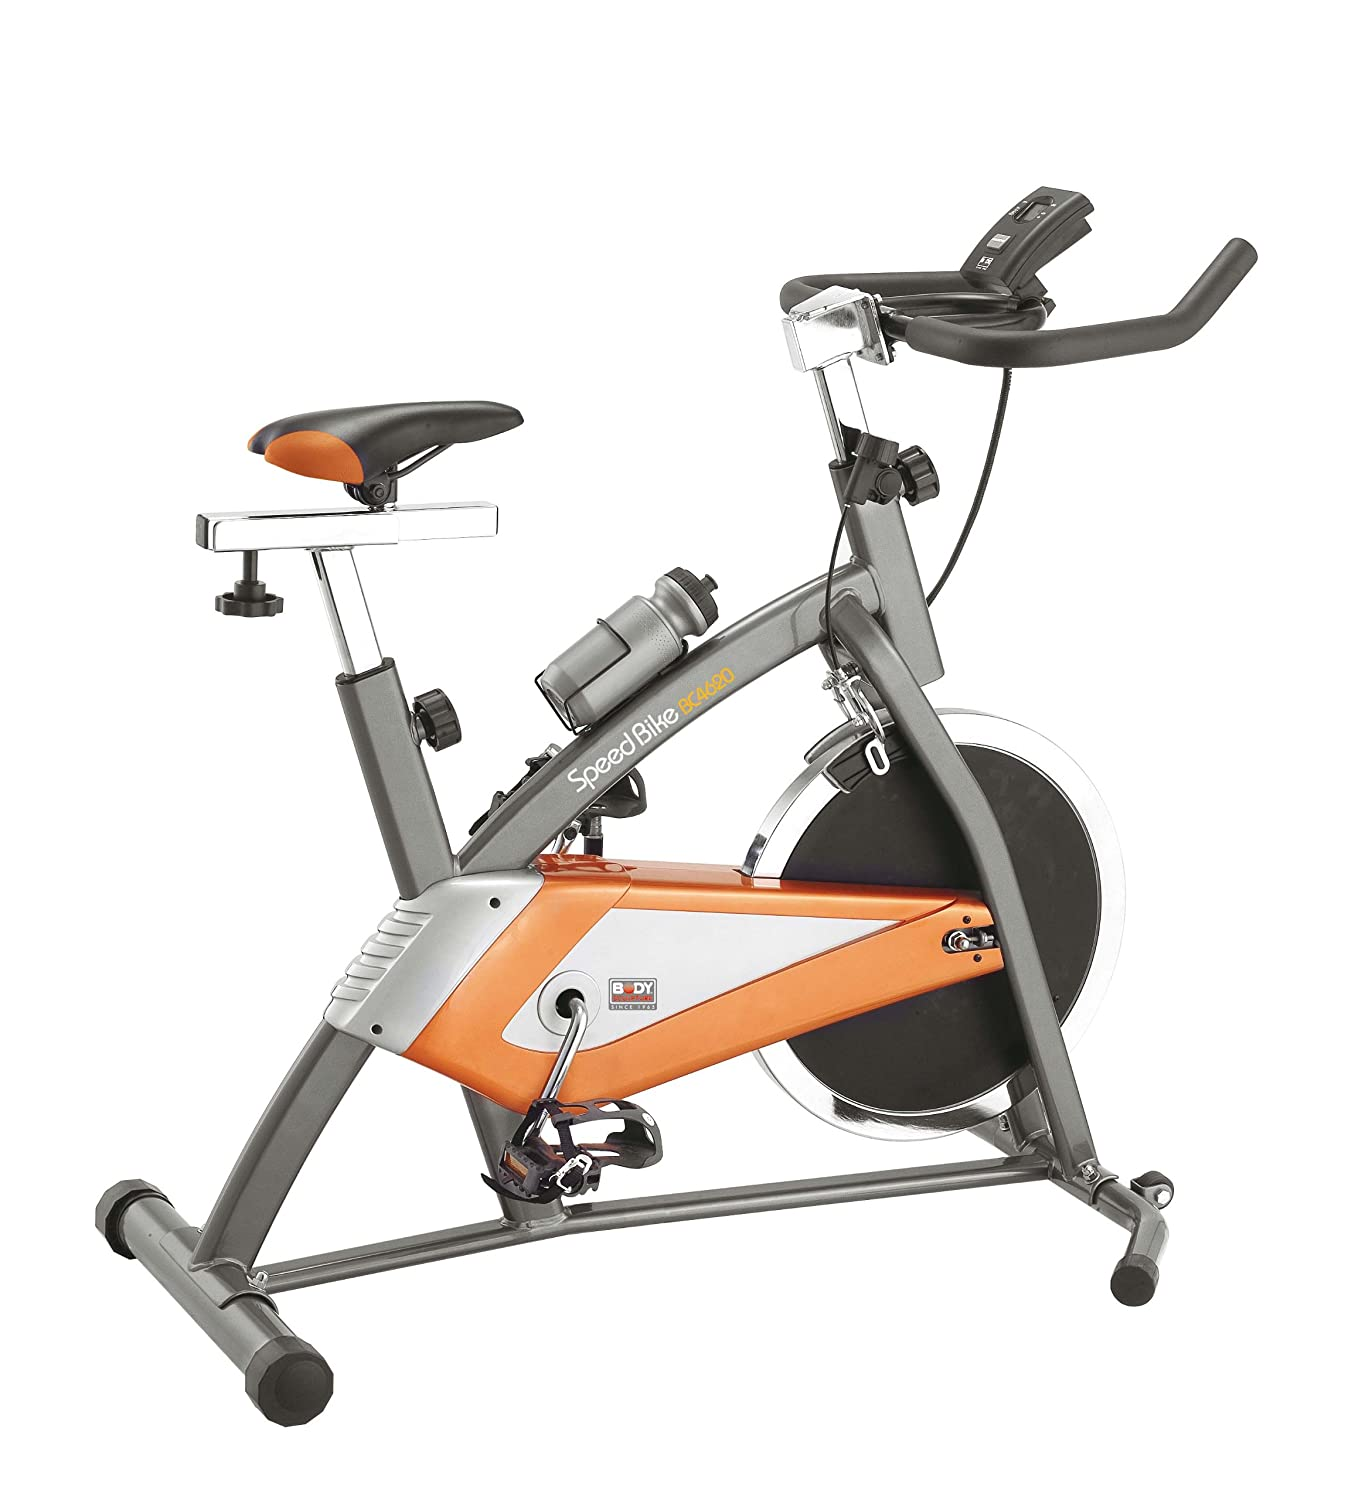 Used Nordic Track Treadmill Sale, Spinning Bike Reviews